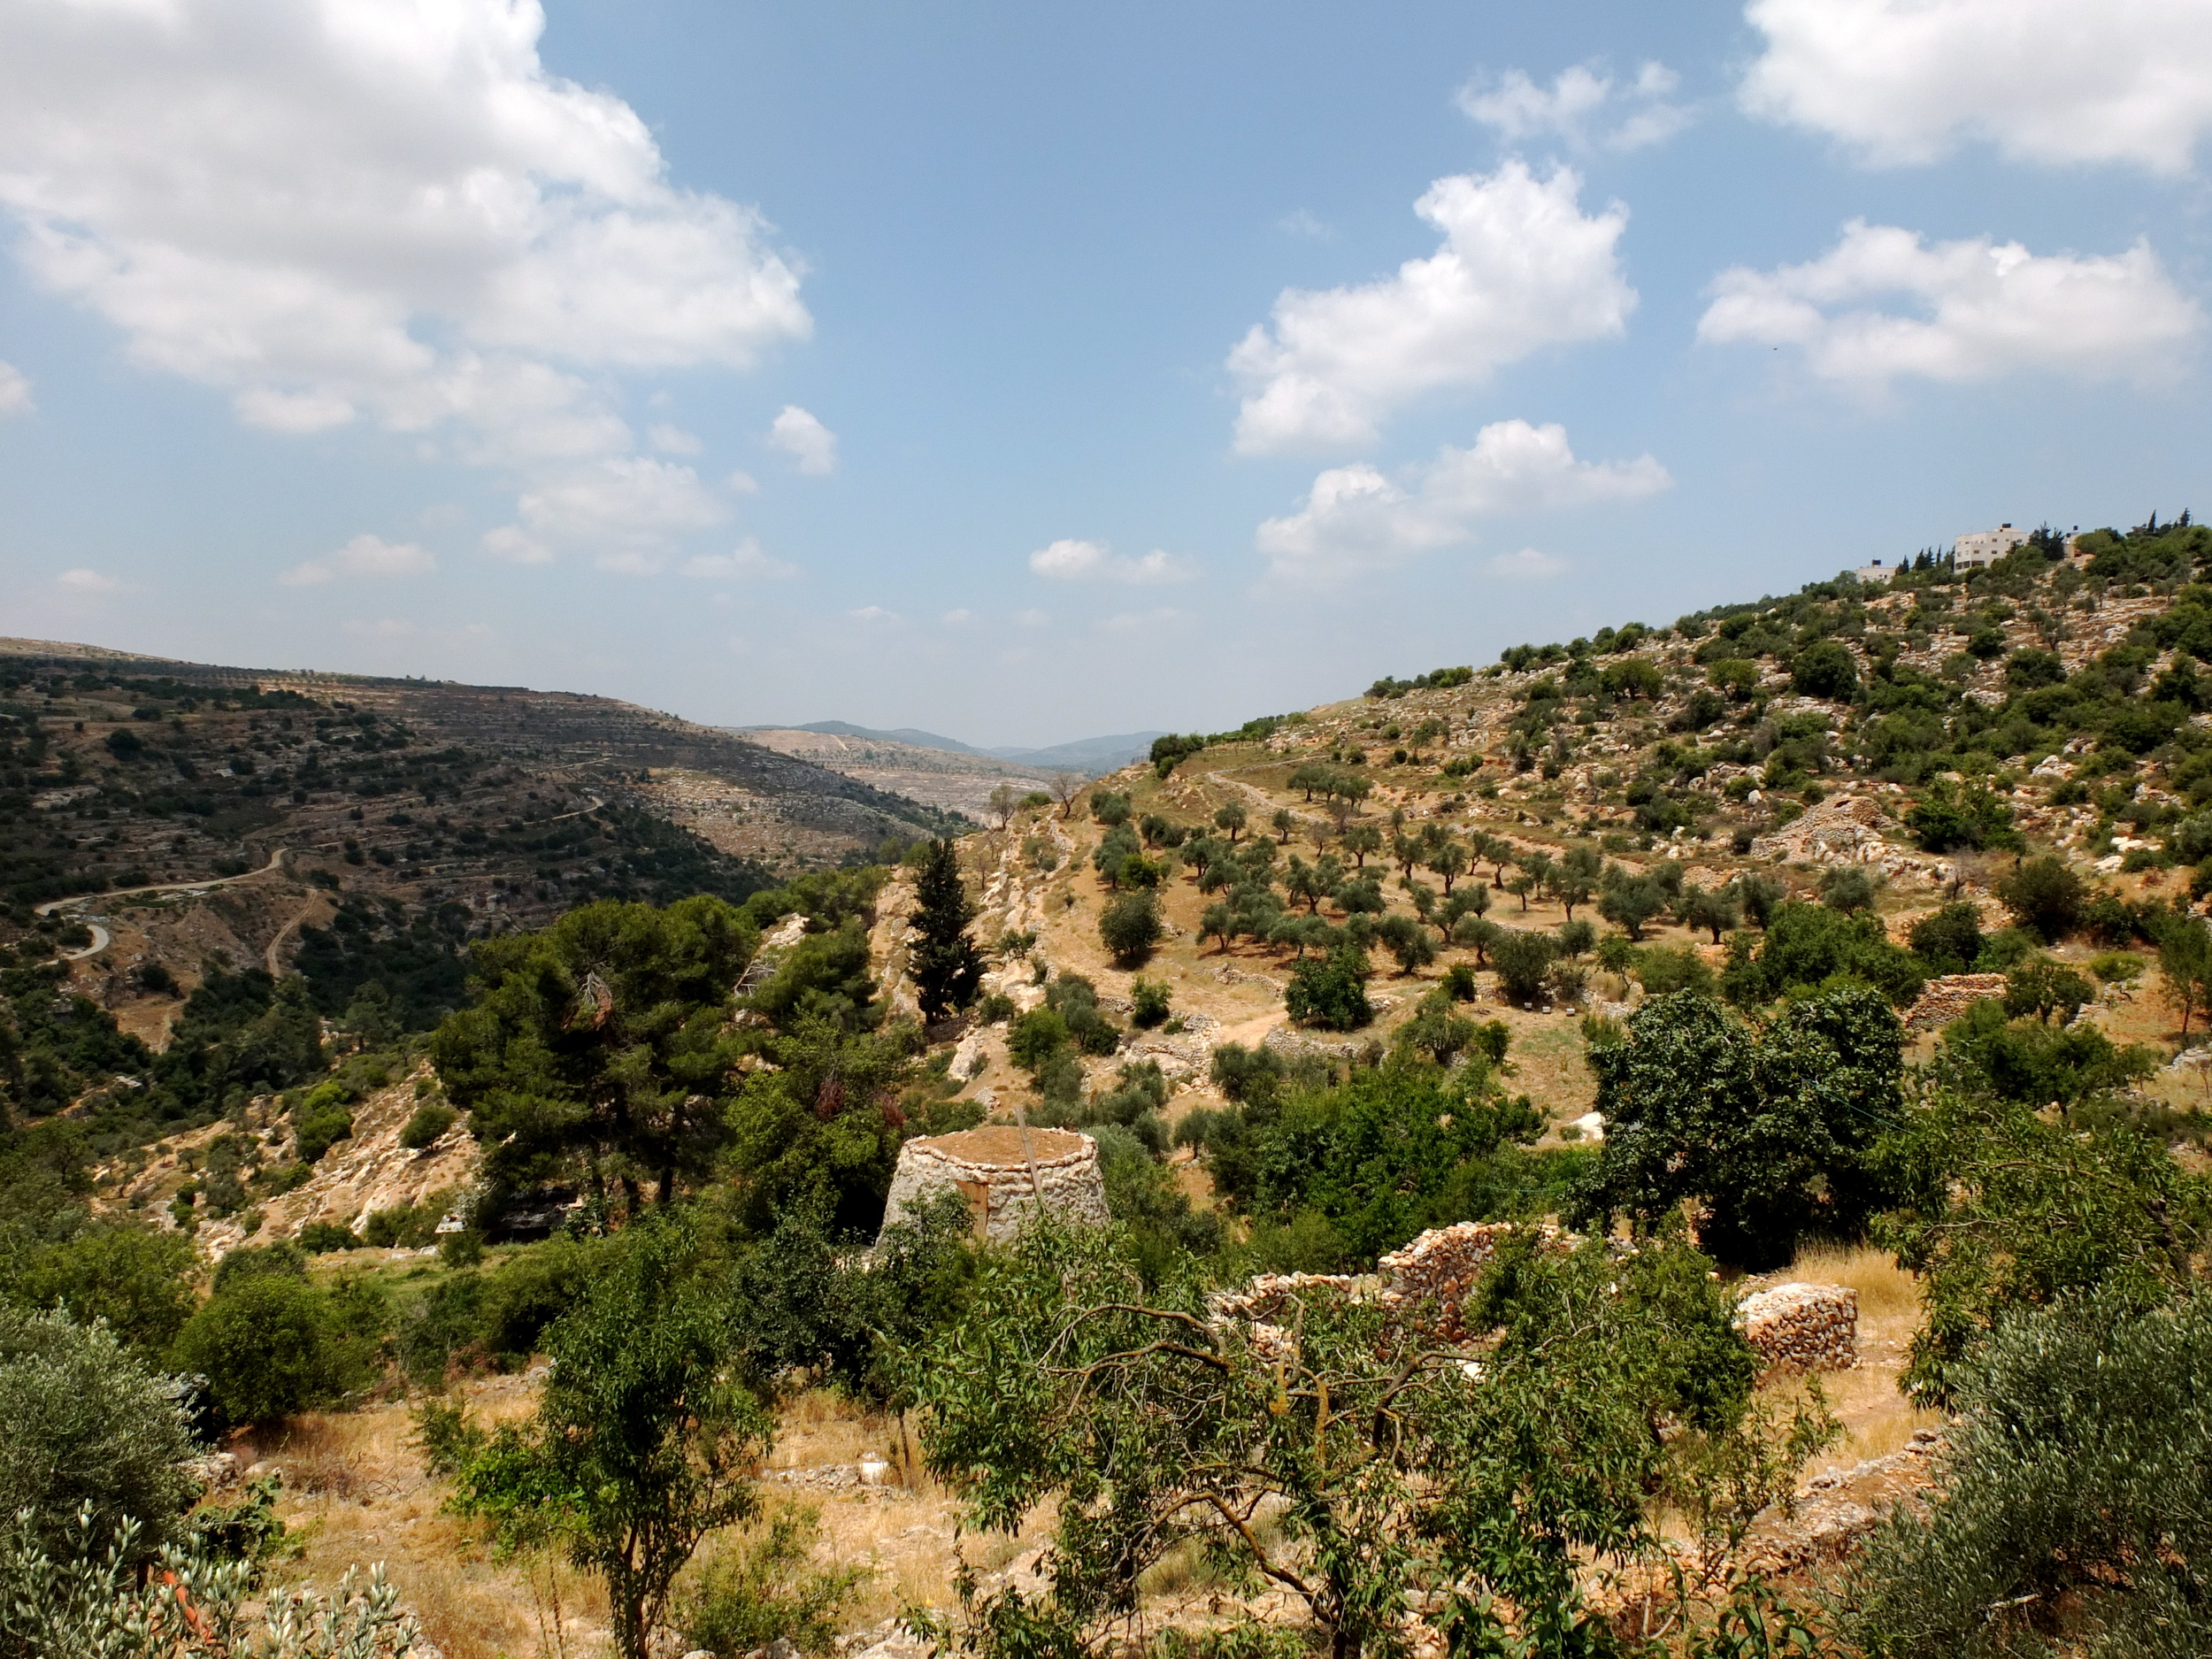 On my second day in the Bethlehem area, I visited the nearby town of Beit Jala,     home to an organic farm and restaurant called Hosh Jasmin. This is the view from     the farmhouse's porch-like enclosure, where I nursed a Taybeh beer—produced at     the first microbrewery in the Middle East, outside Ramallah—while awaiting what     turned out to be an incredible lunch. Owner Mazen Saadeh and his crew produce all     the restaurant's superb olive oil from these olive trees spreading out into the valley,     and harvest fruit and nuts from the many apricot, almond, and fig trees.